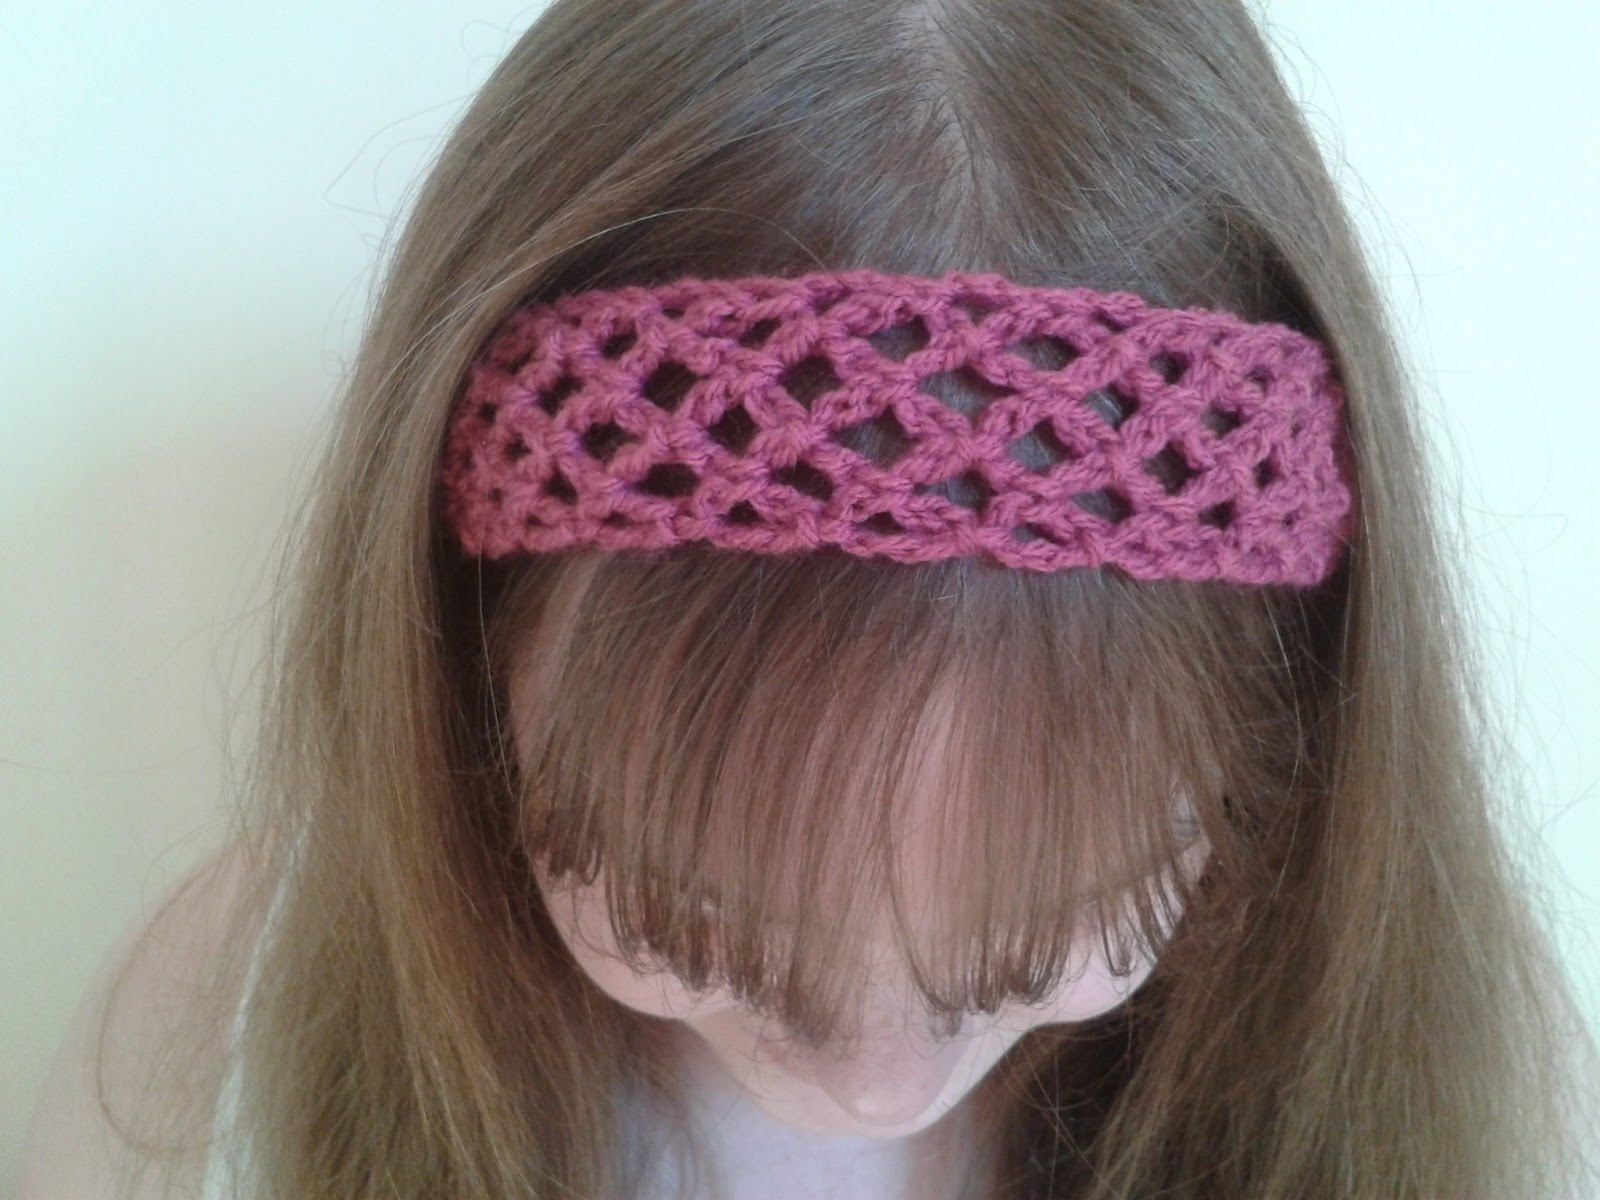 ... to comment and tell us how you customized your headband for spring